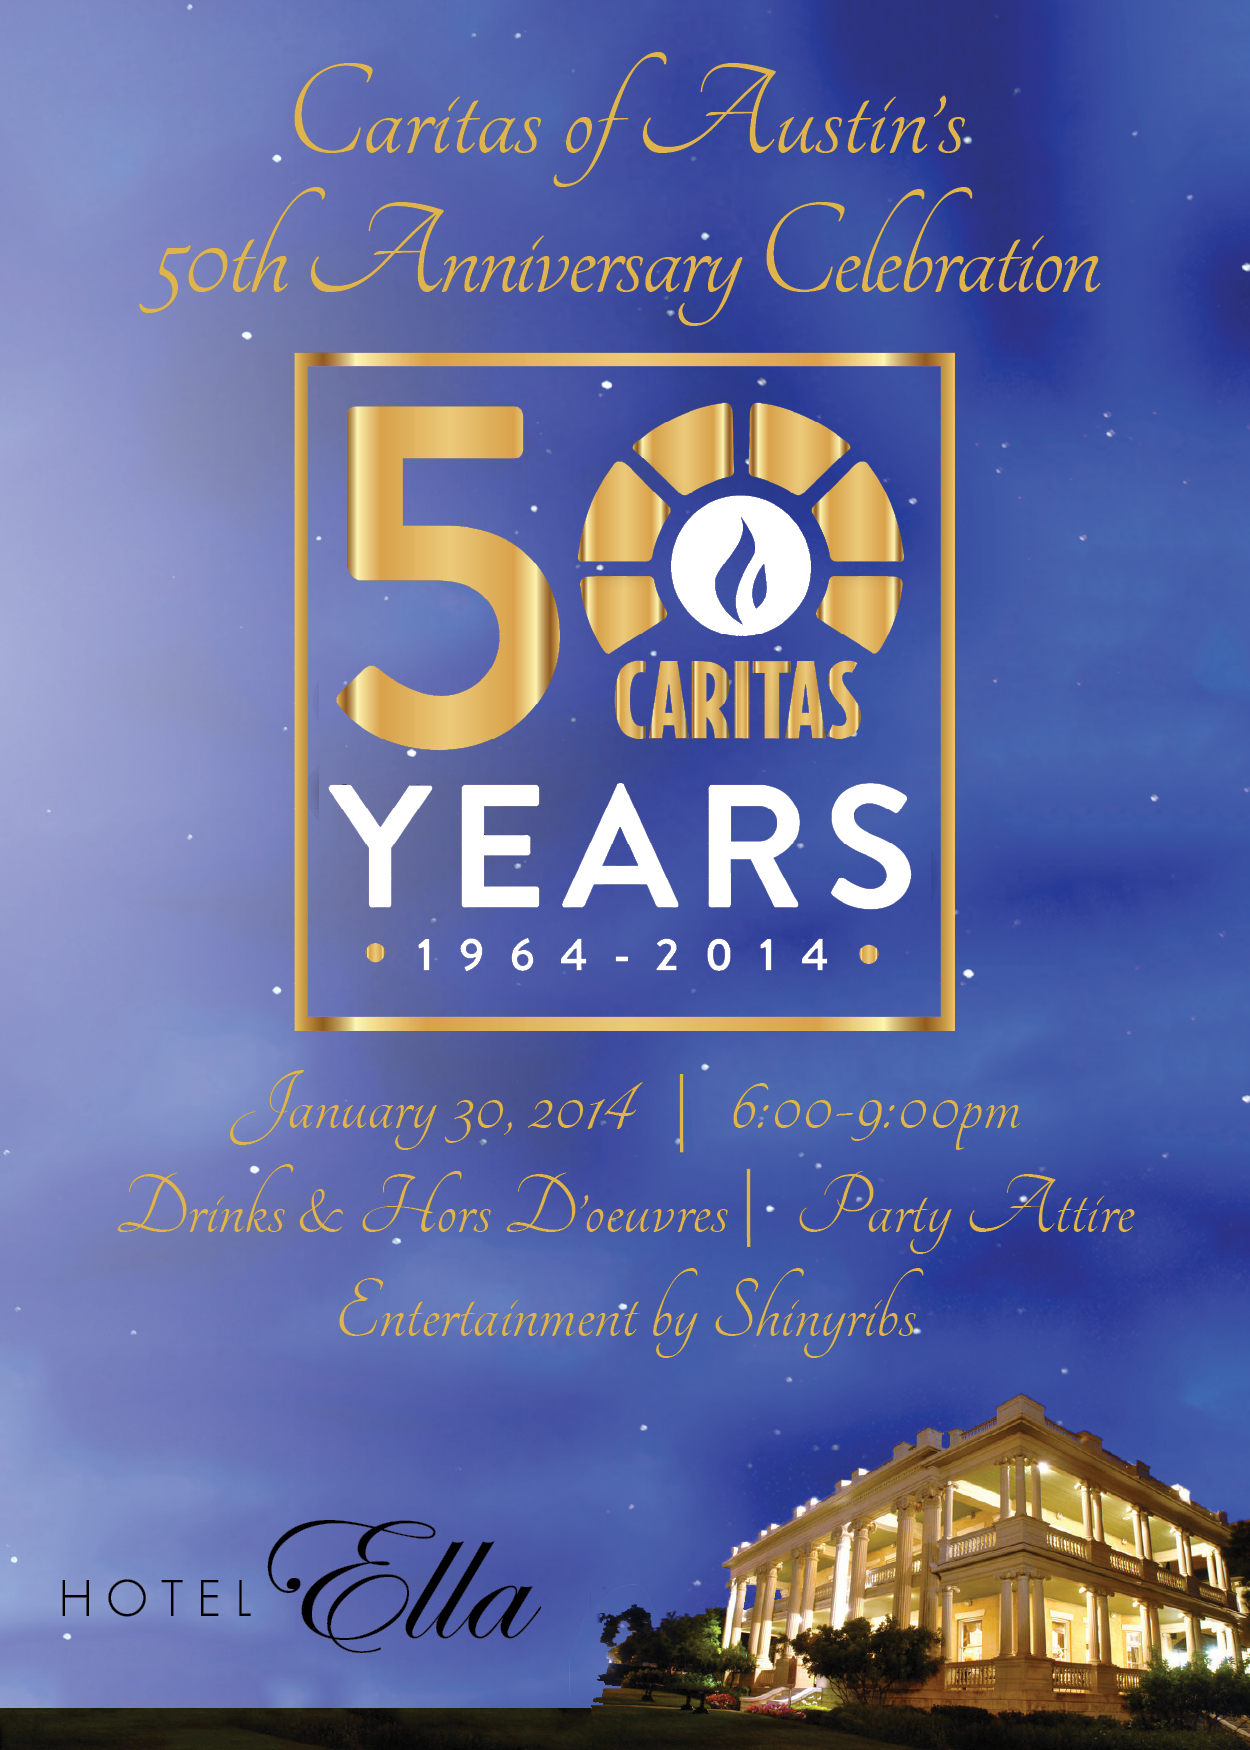 Caritas of Austin 50th Anniversary Celebration